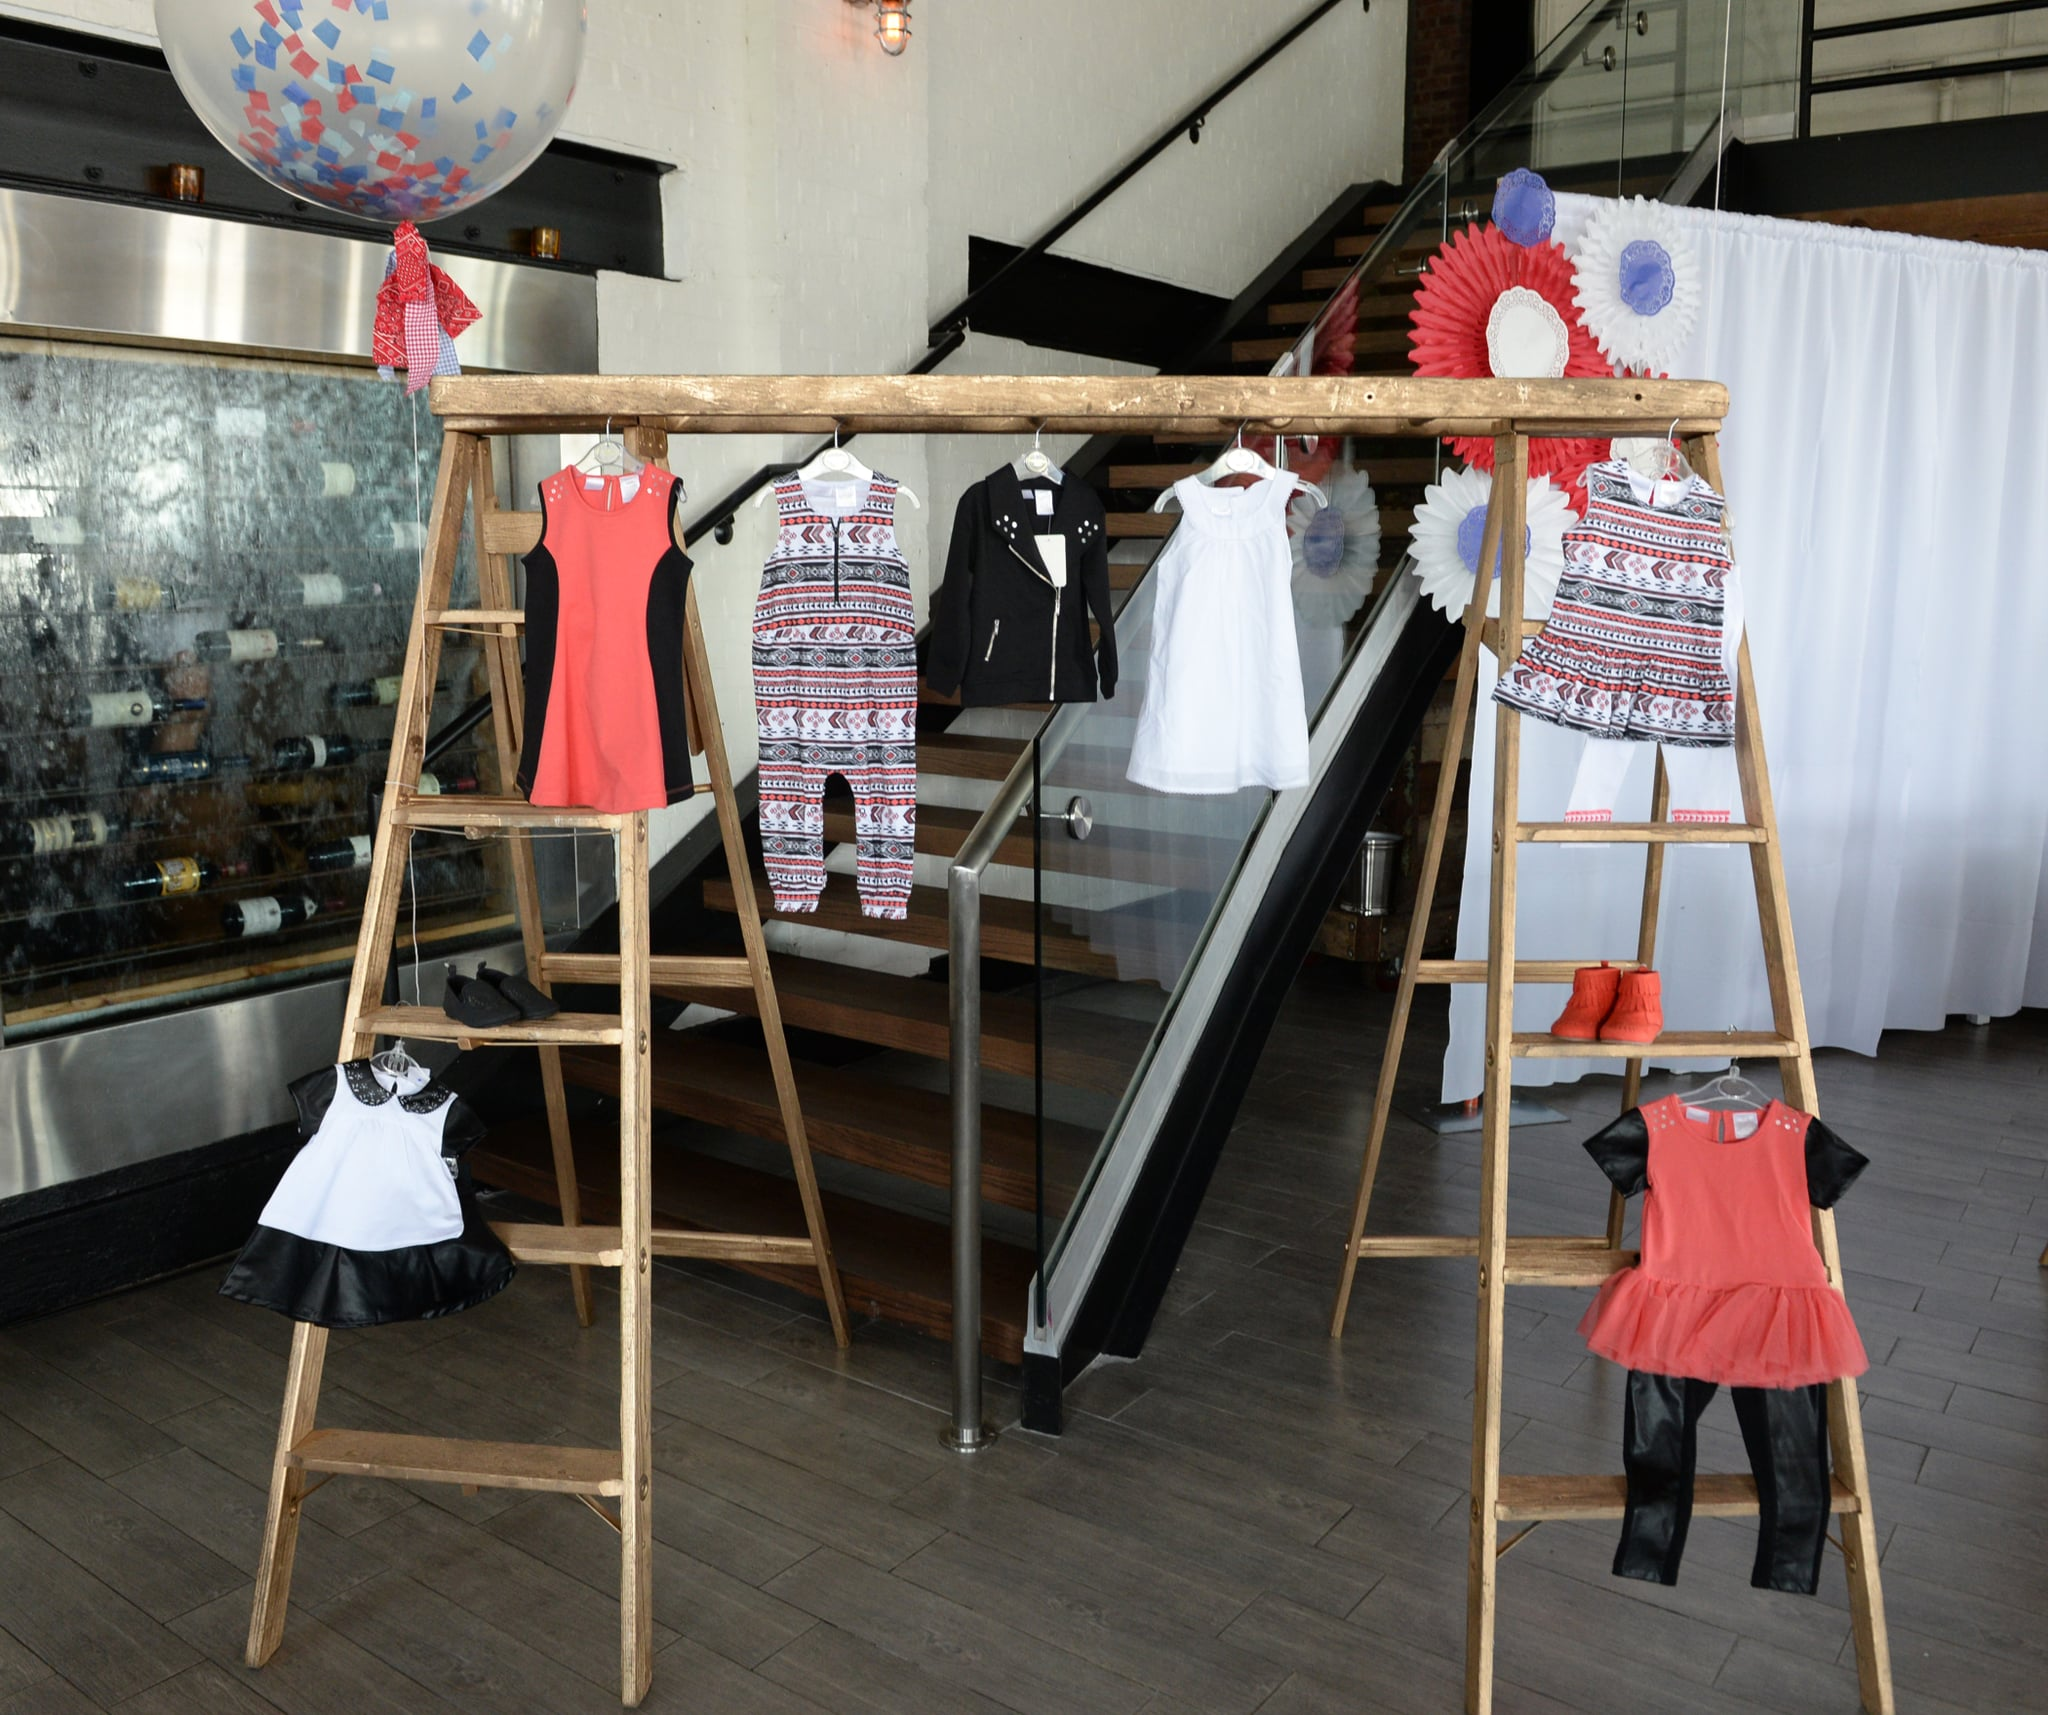 The Guests All Received Kardashian Kids Gear